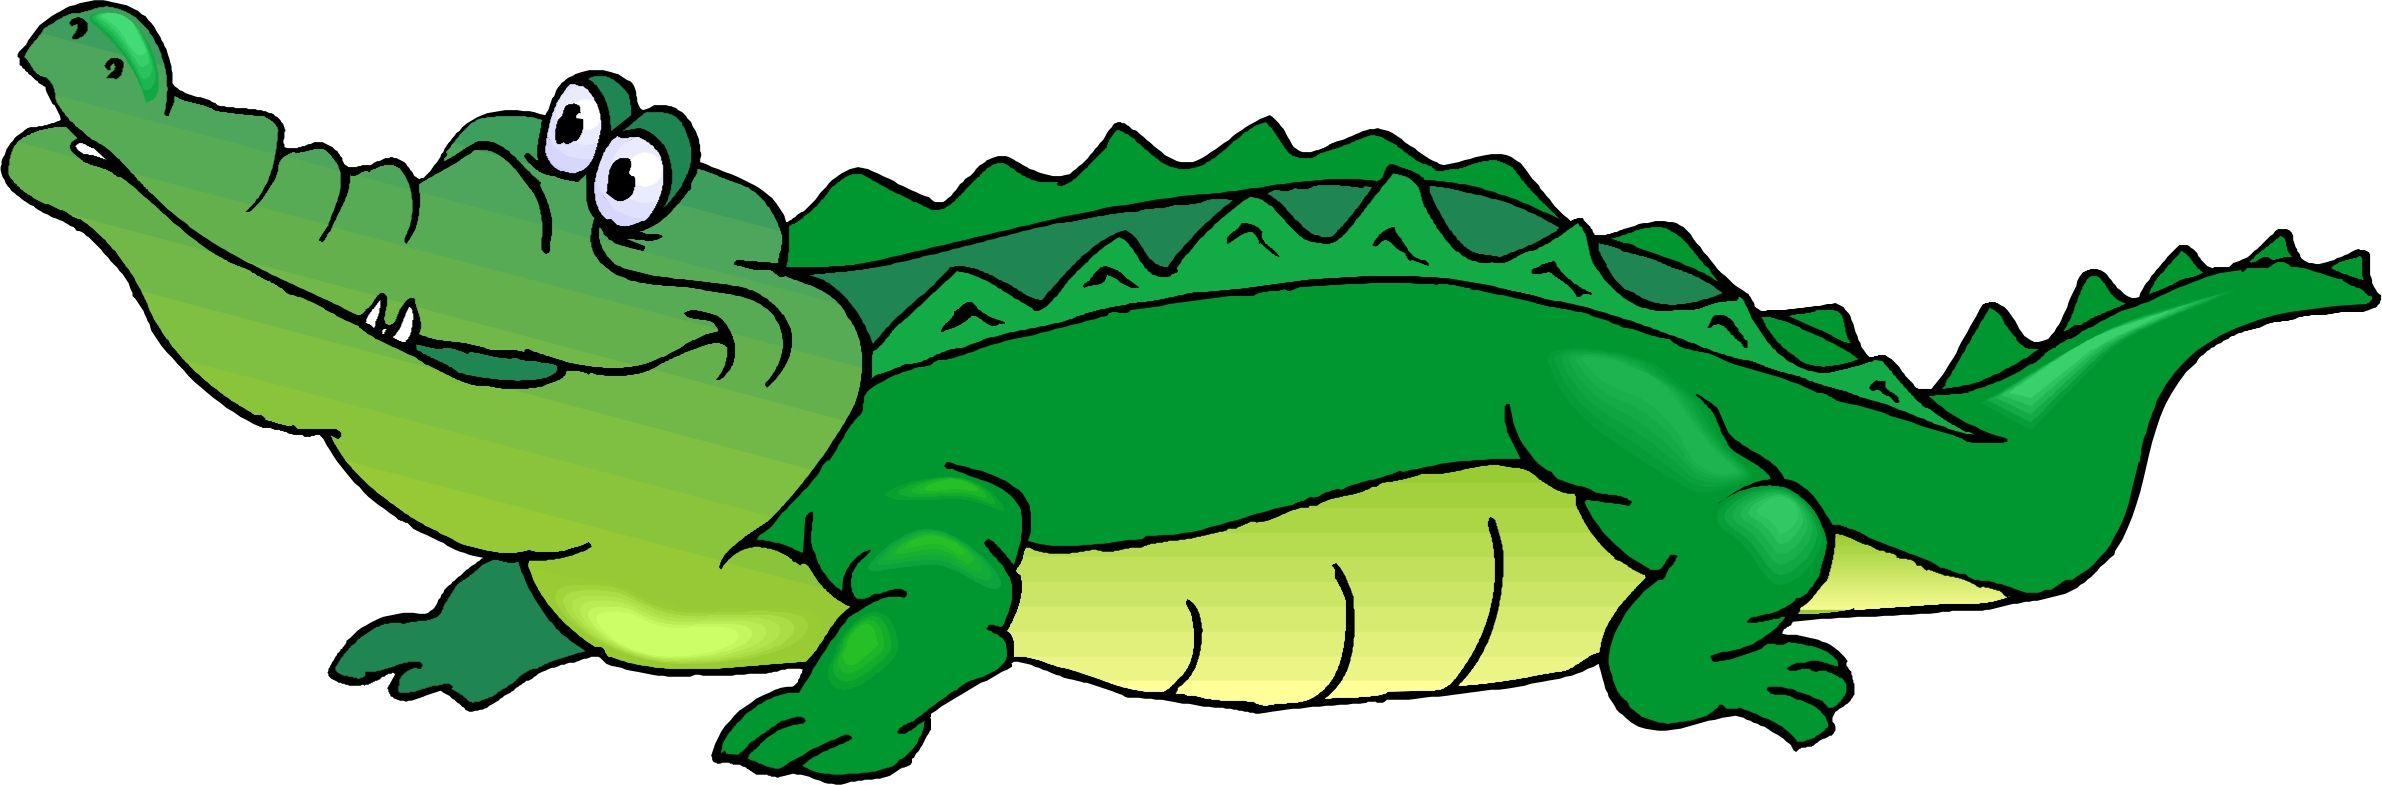 2382x785 Gator Clip Art Use These Free Images For Your Websites, Art